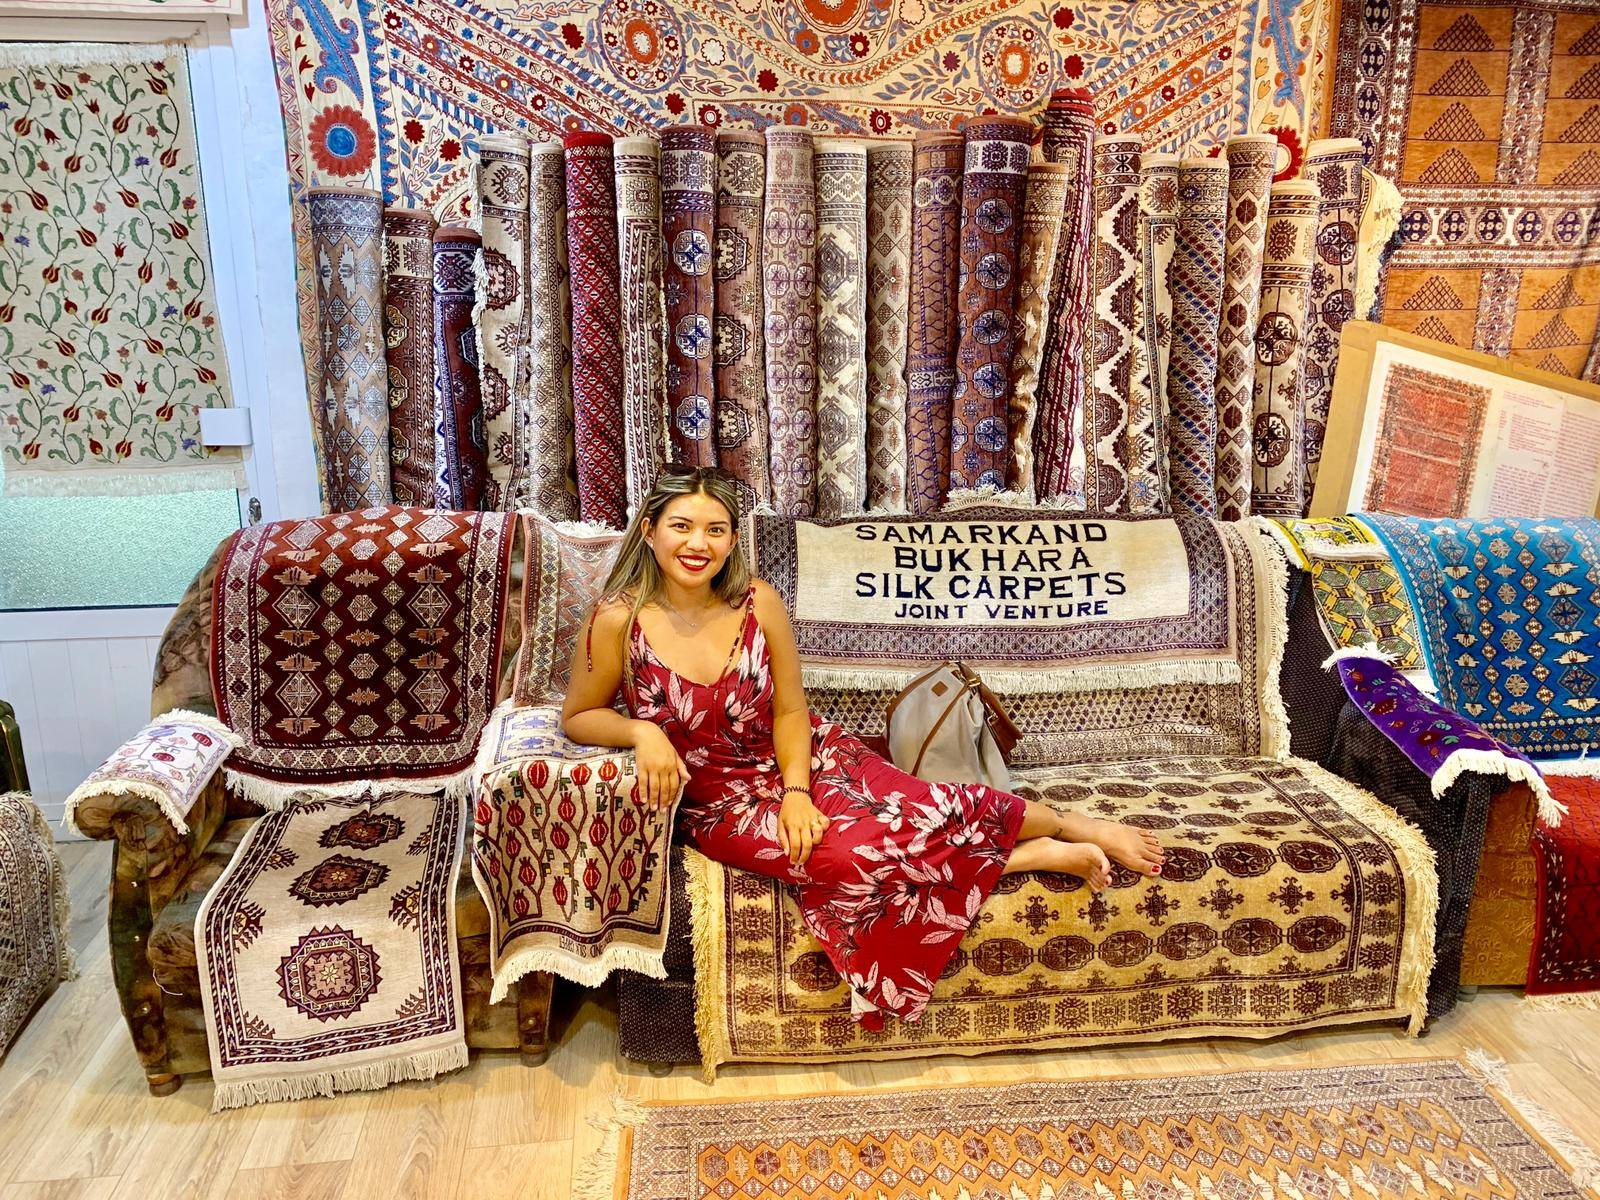 Kach Solo Travels in 2019 Silk Carpet Production and Konigil Village Tour 13.jpg